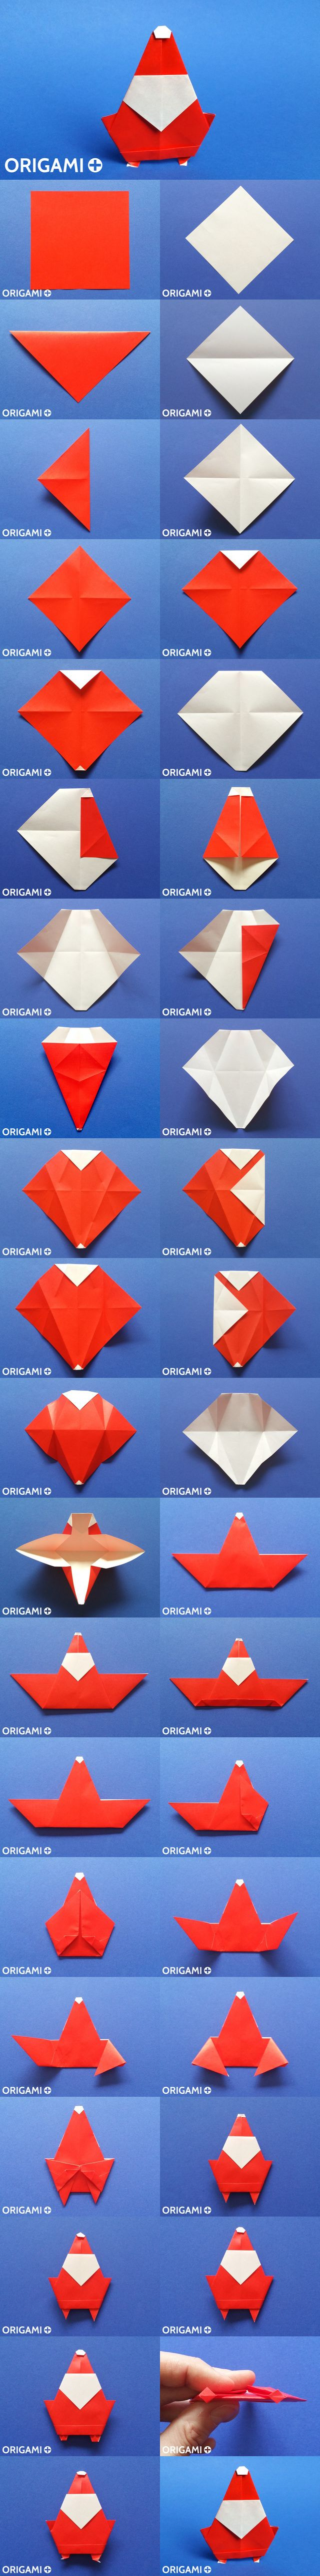 17 best images about origami santa on pinterest watches for Make origami santa claus